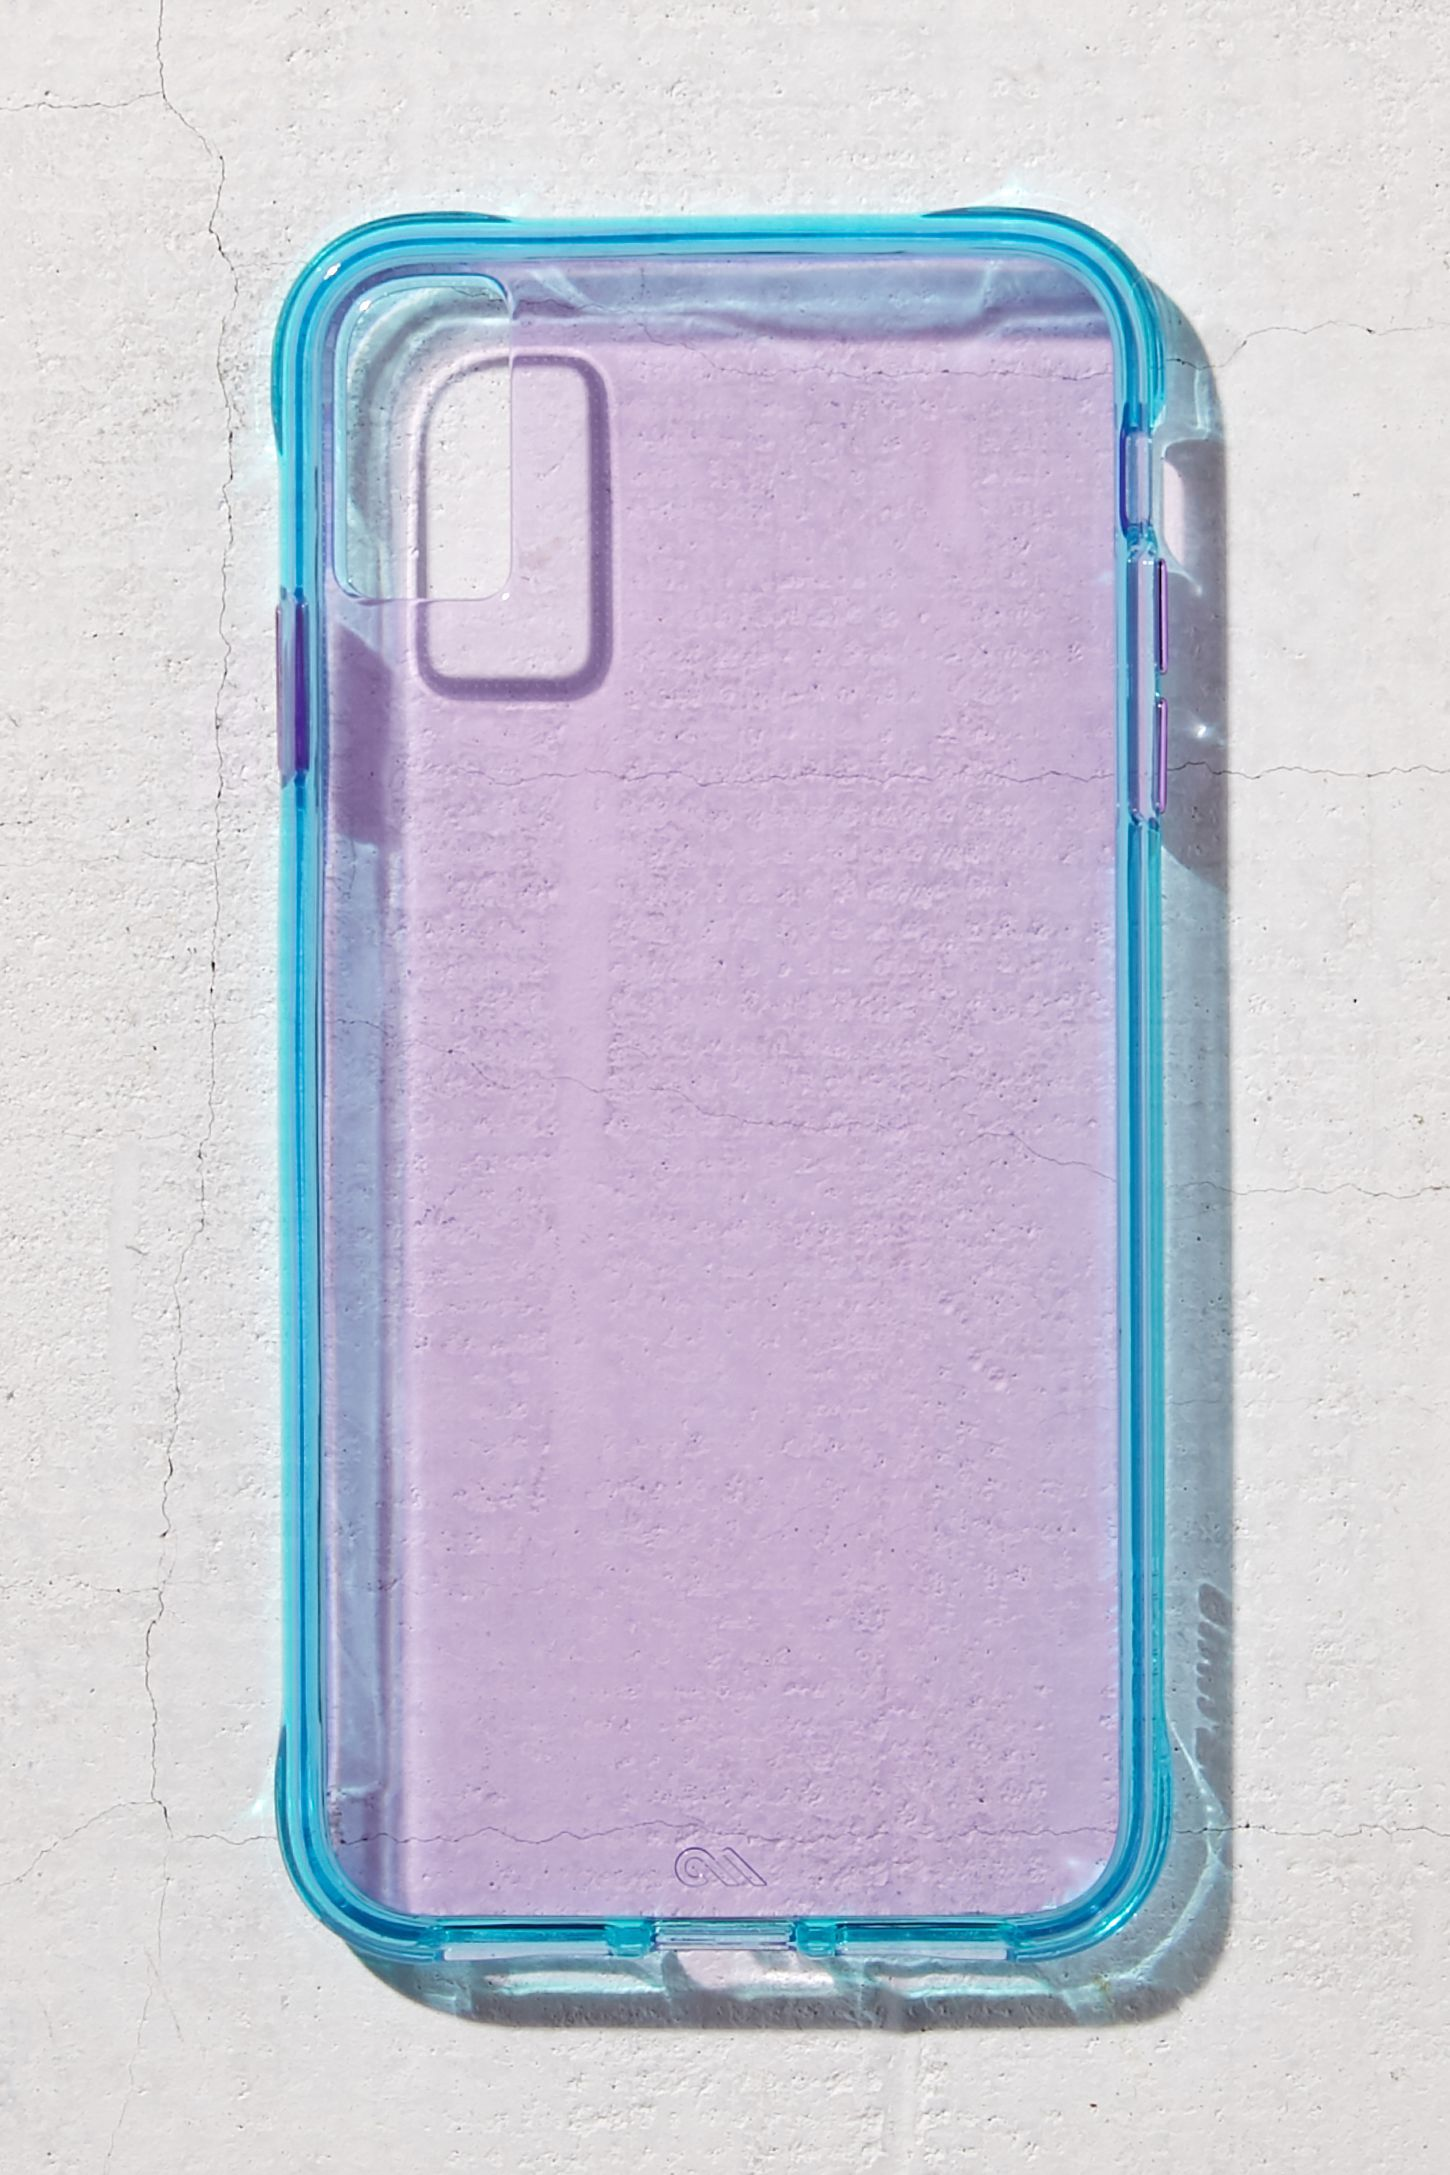 new concept 764c8 5cb01 Case-Mate Tough Purple + Blue Neon iPhone Case in 2019 ...